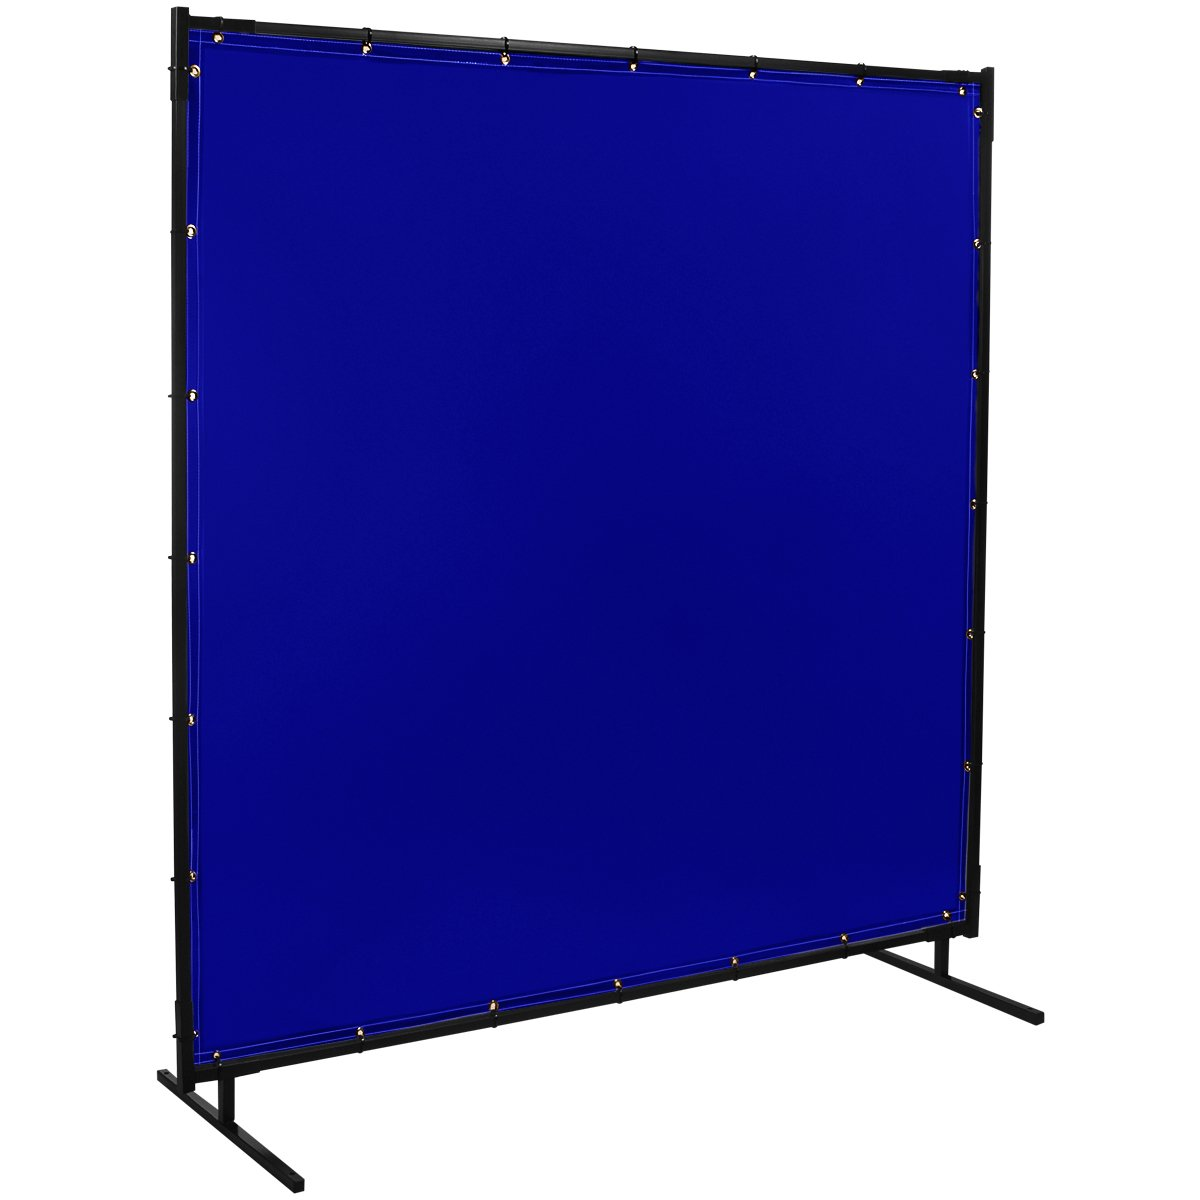 Steiner 525-6X10 Protect-O-Screen Classic Welding Screen with Flame Retardant 14 Mil Tinted Transparent Vinyl Curtain, Blue, 6' x 10' 6' x 10' ERB